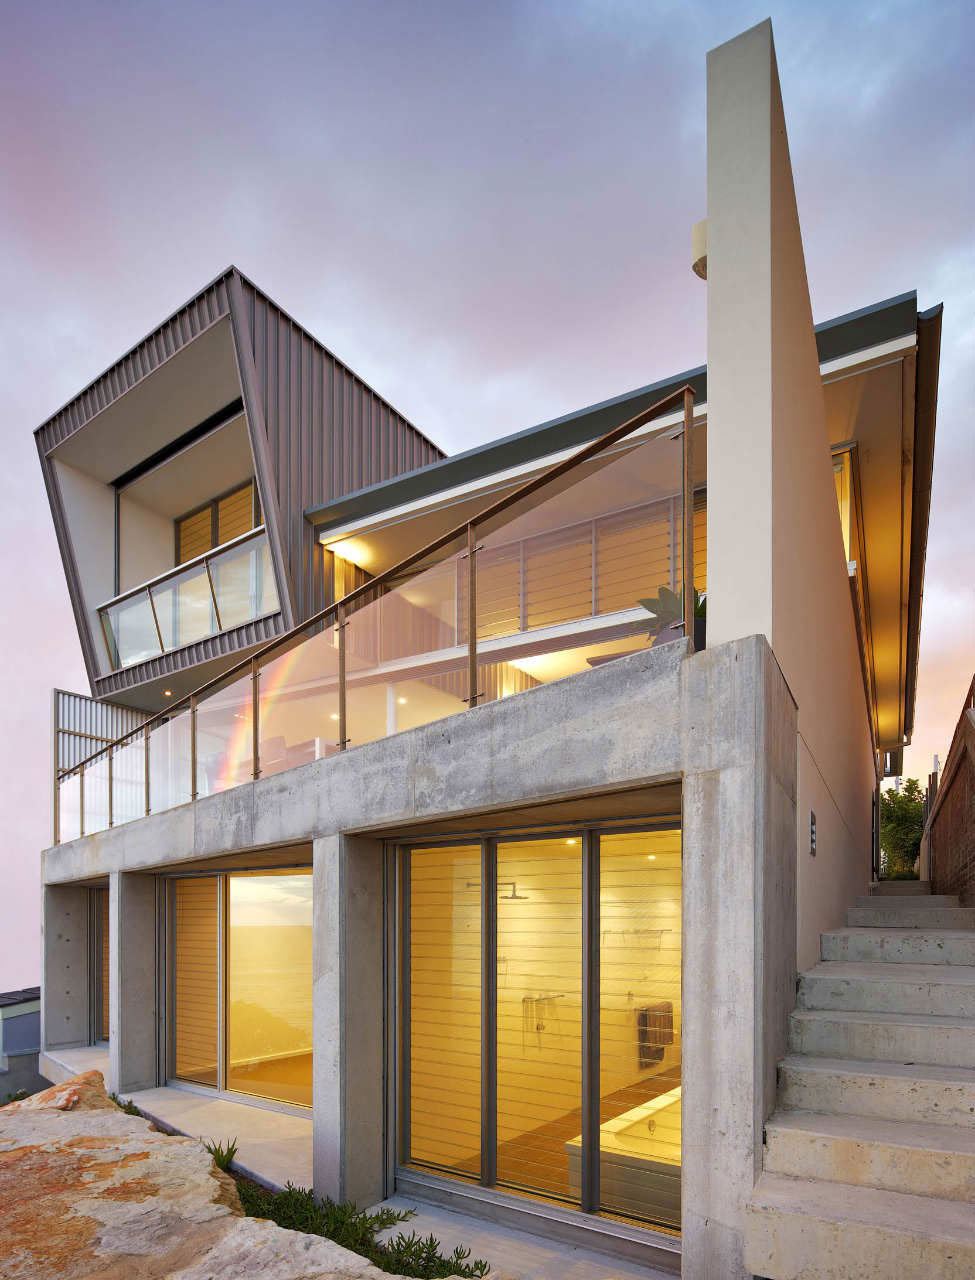 Queenscliff-House-by-Utz-Sanby-Architects Australian architecture and some beautiful houses to inspire you